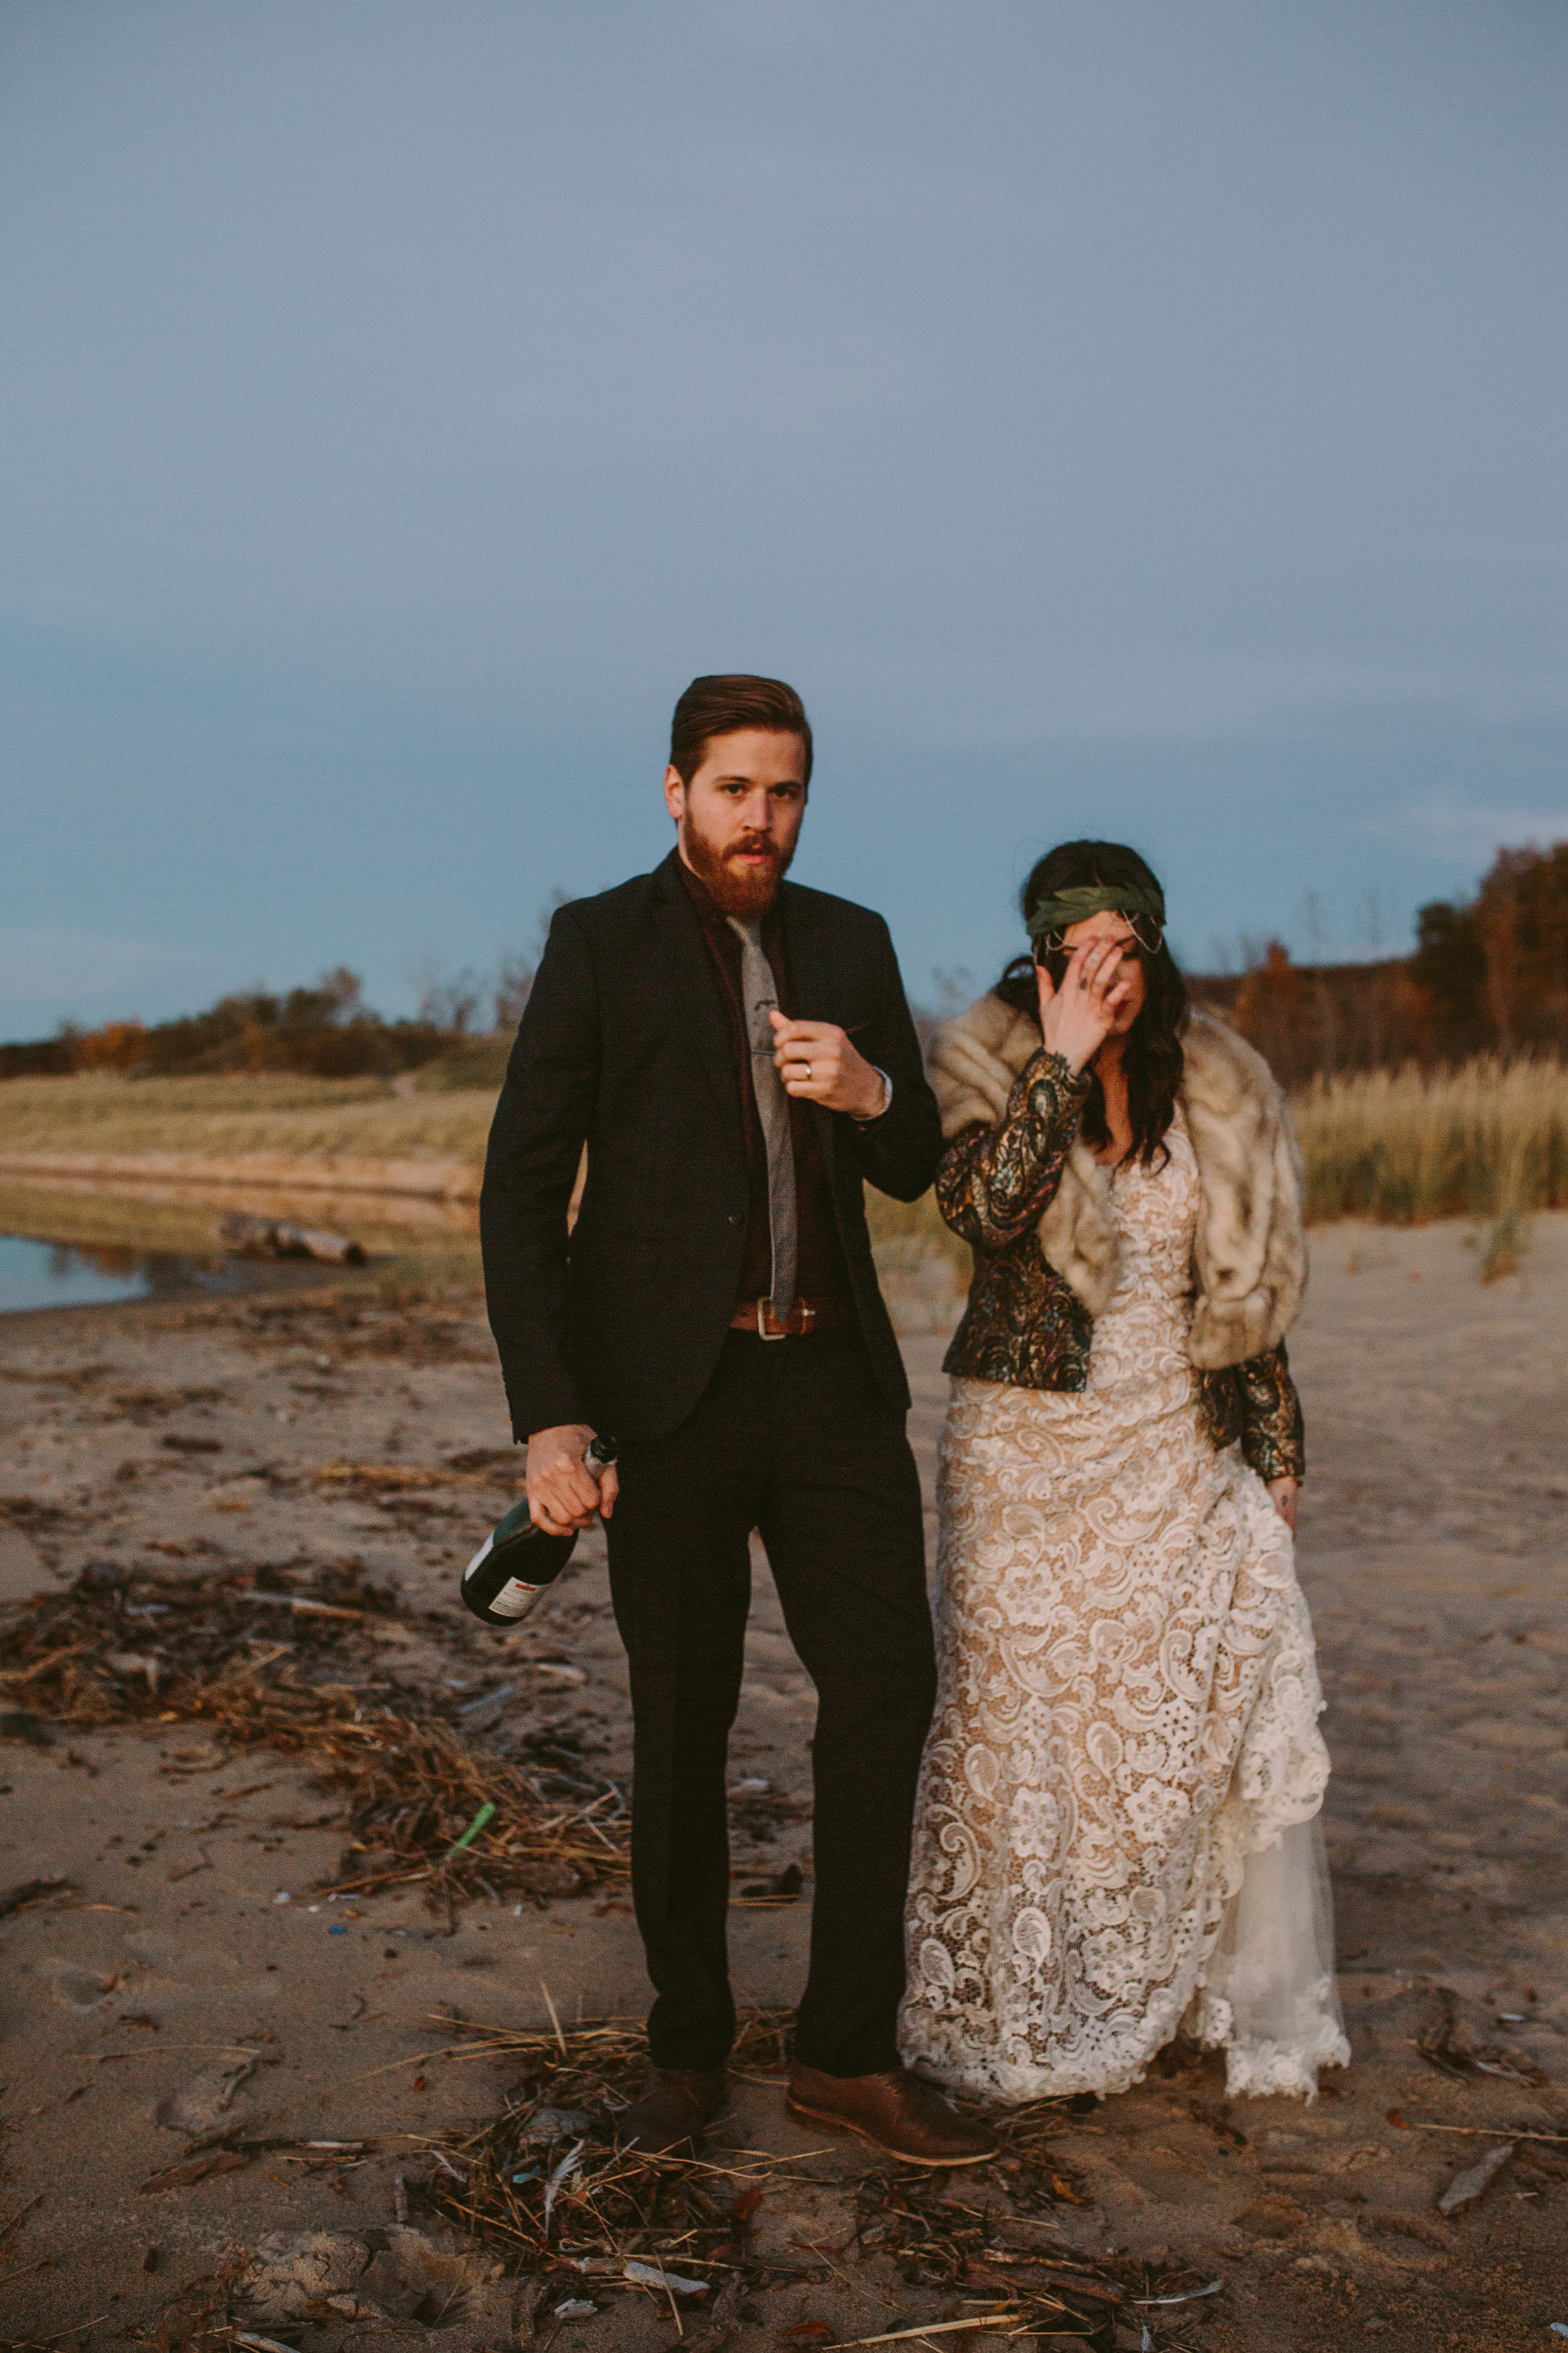 Michigan-Wedding-Photography-at-Warren-Dunes-State-Park-by-Megan-Saul-Photography(397of409).jpg